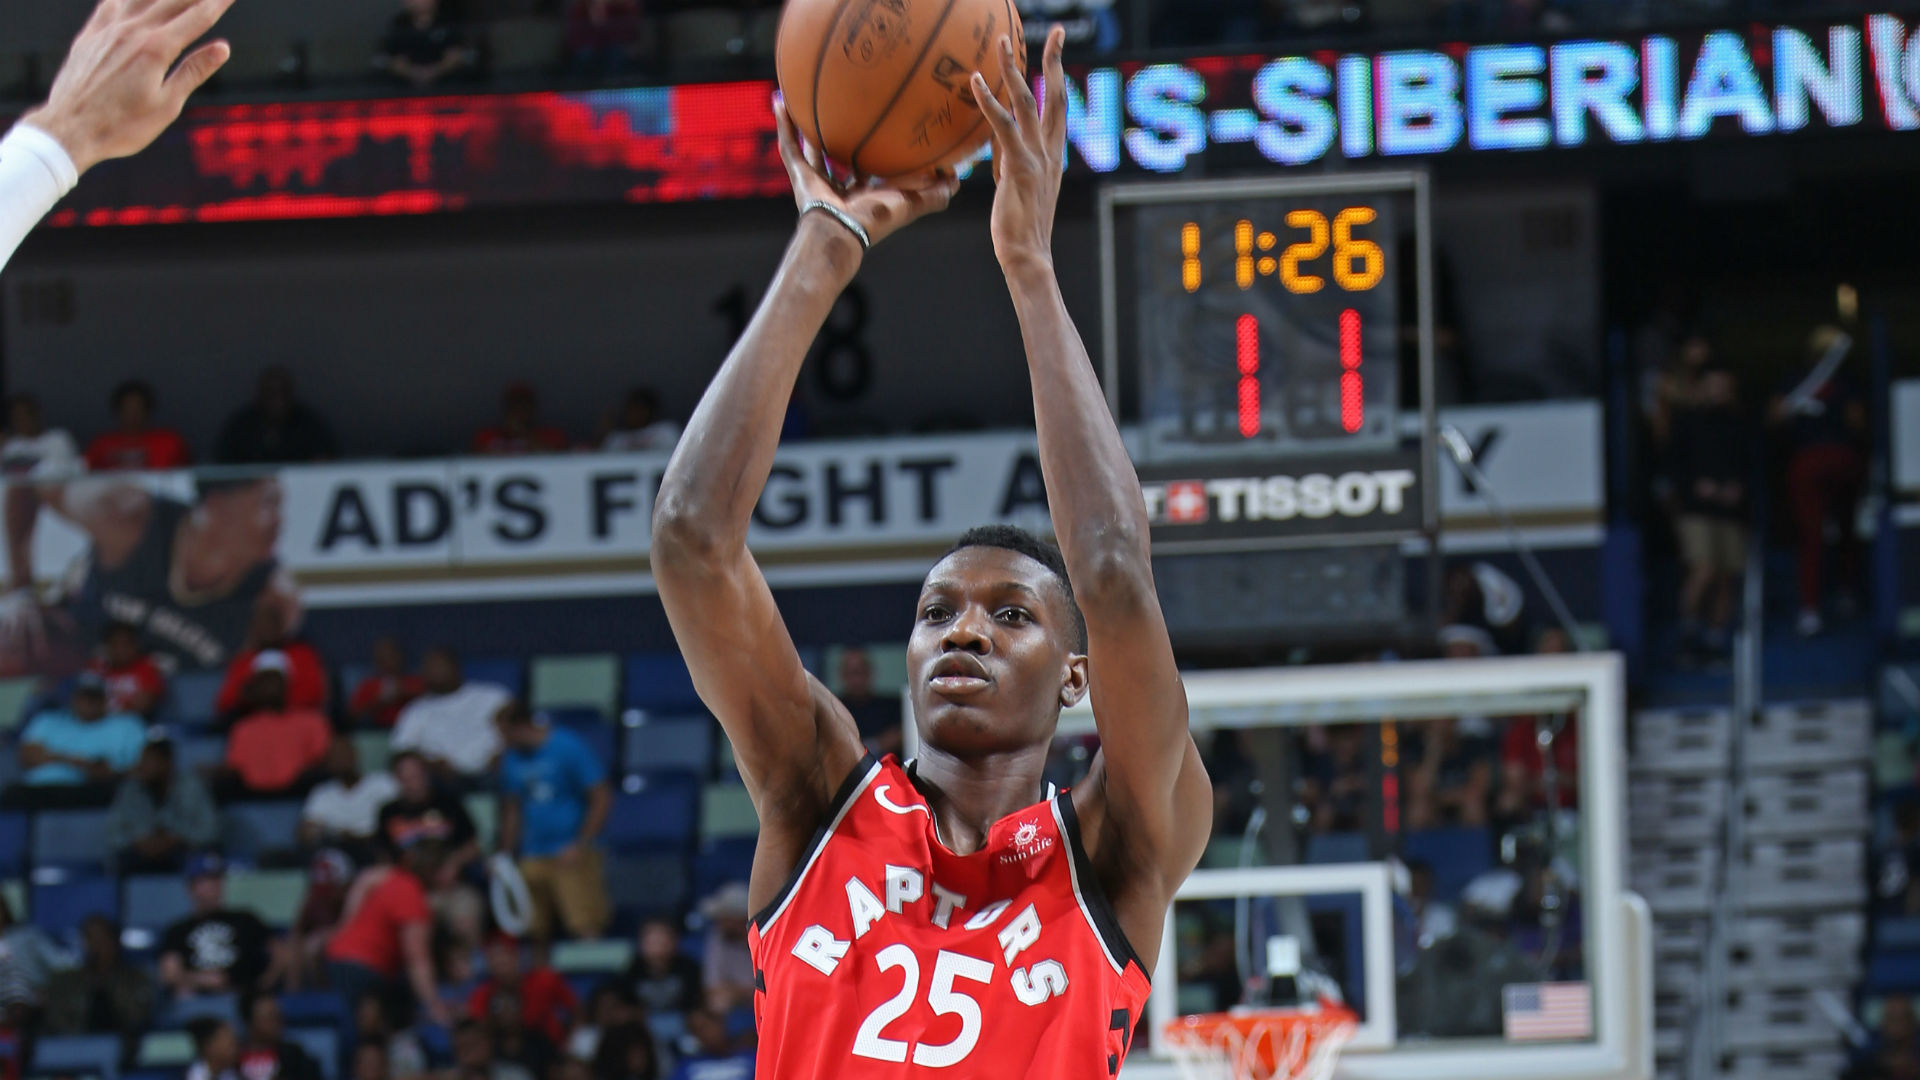 Raptors News: Report: Toronto Raptors Sign Chris Boucher To Multiyear